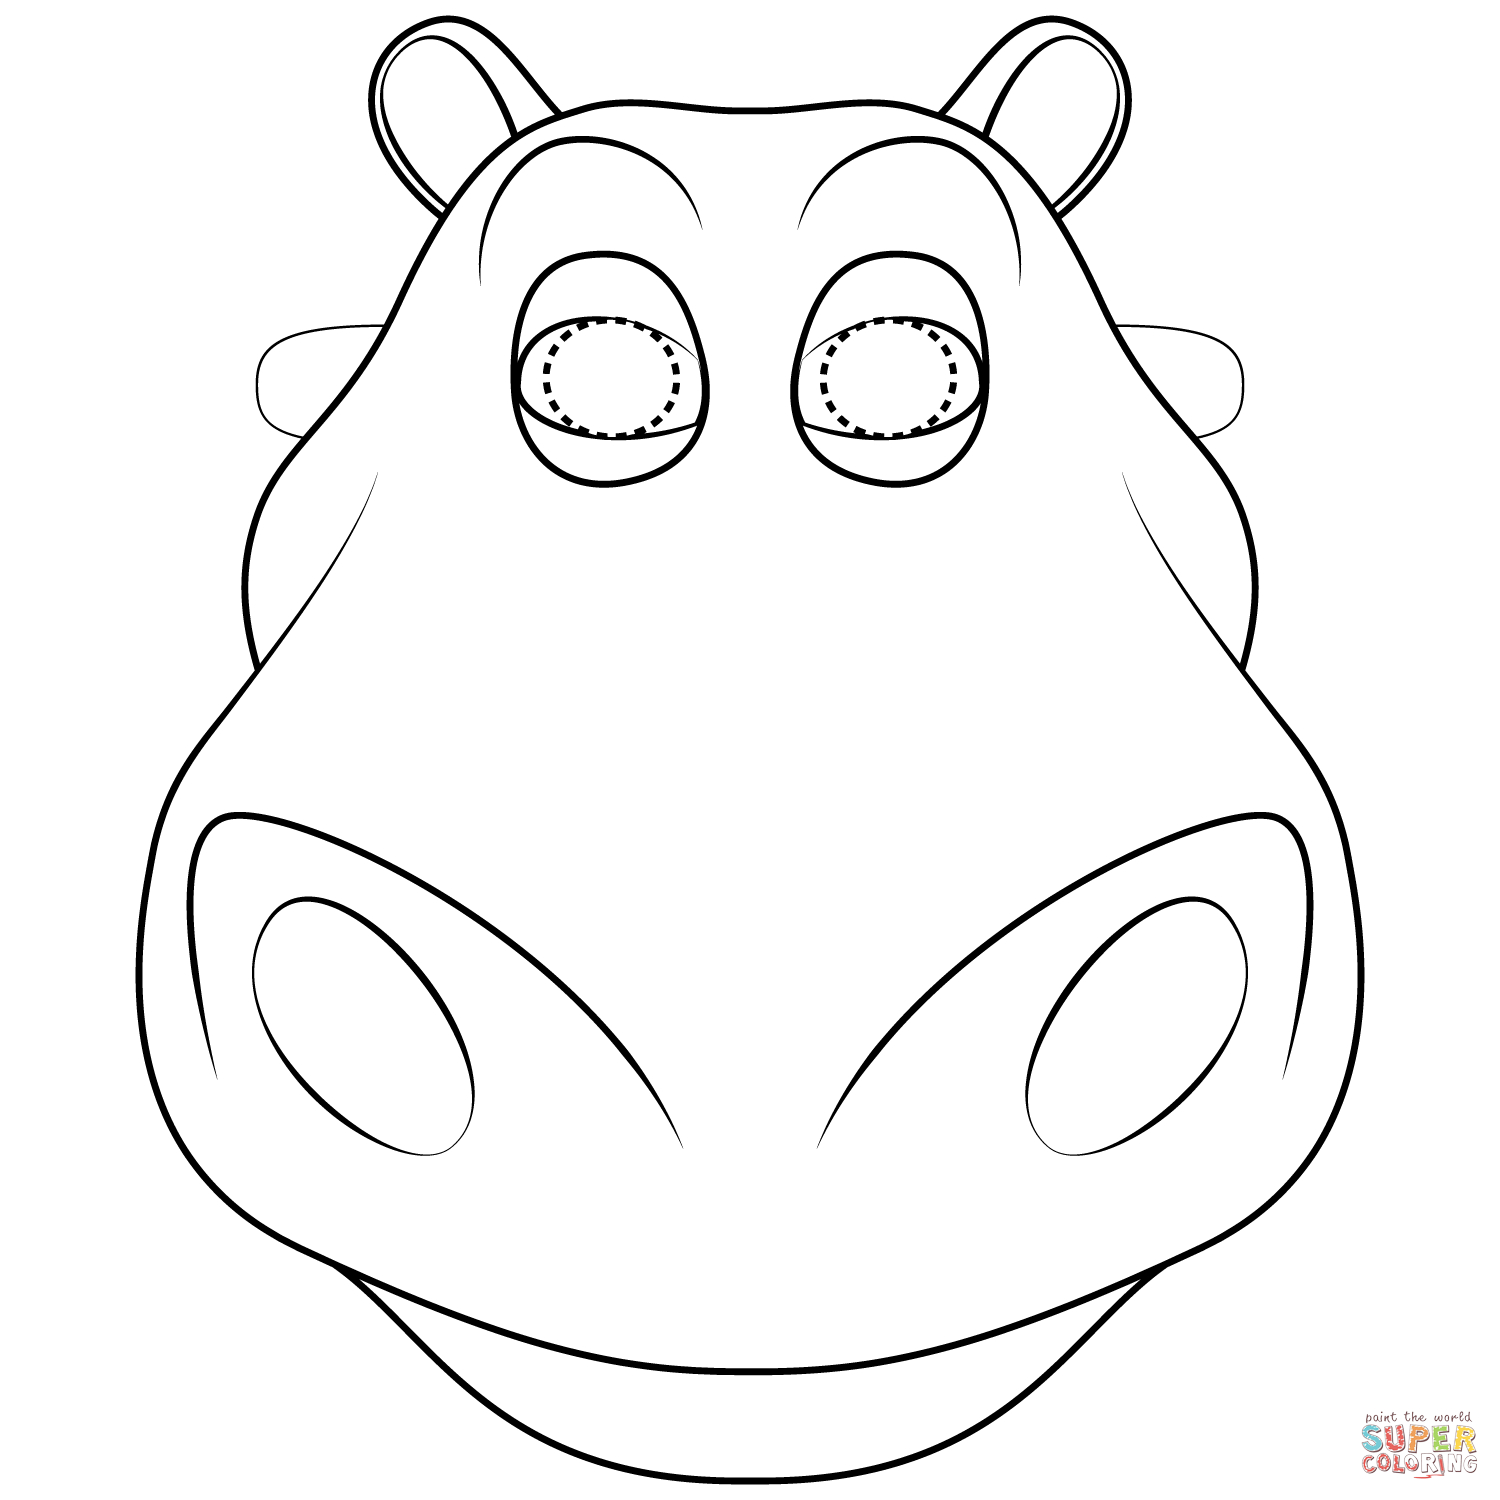 Hippo Mask Coloring Page   Free Printable Coloring Pages - Free Printable Hippo Mask